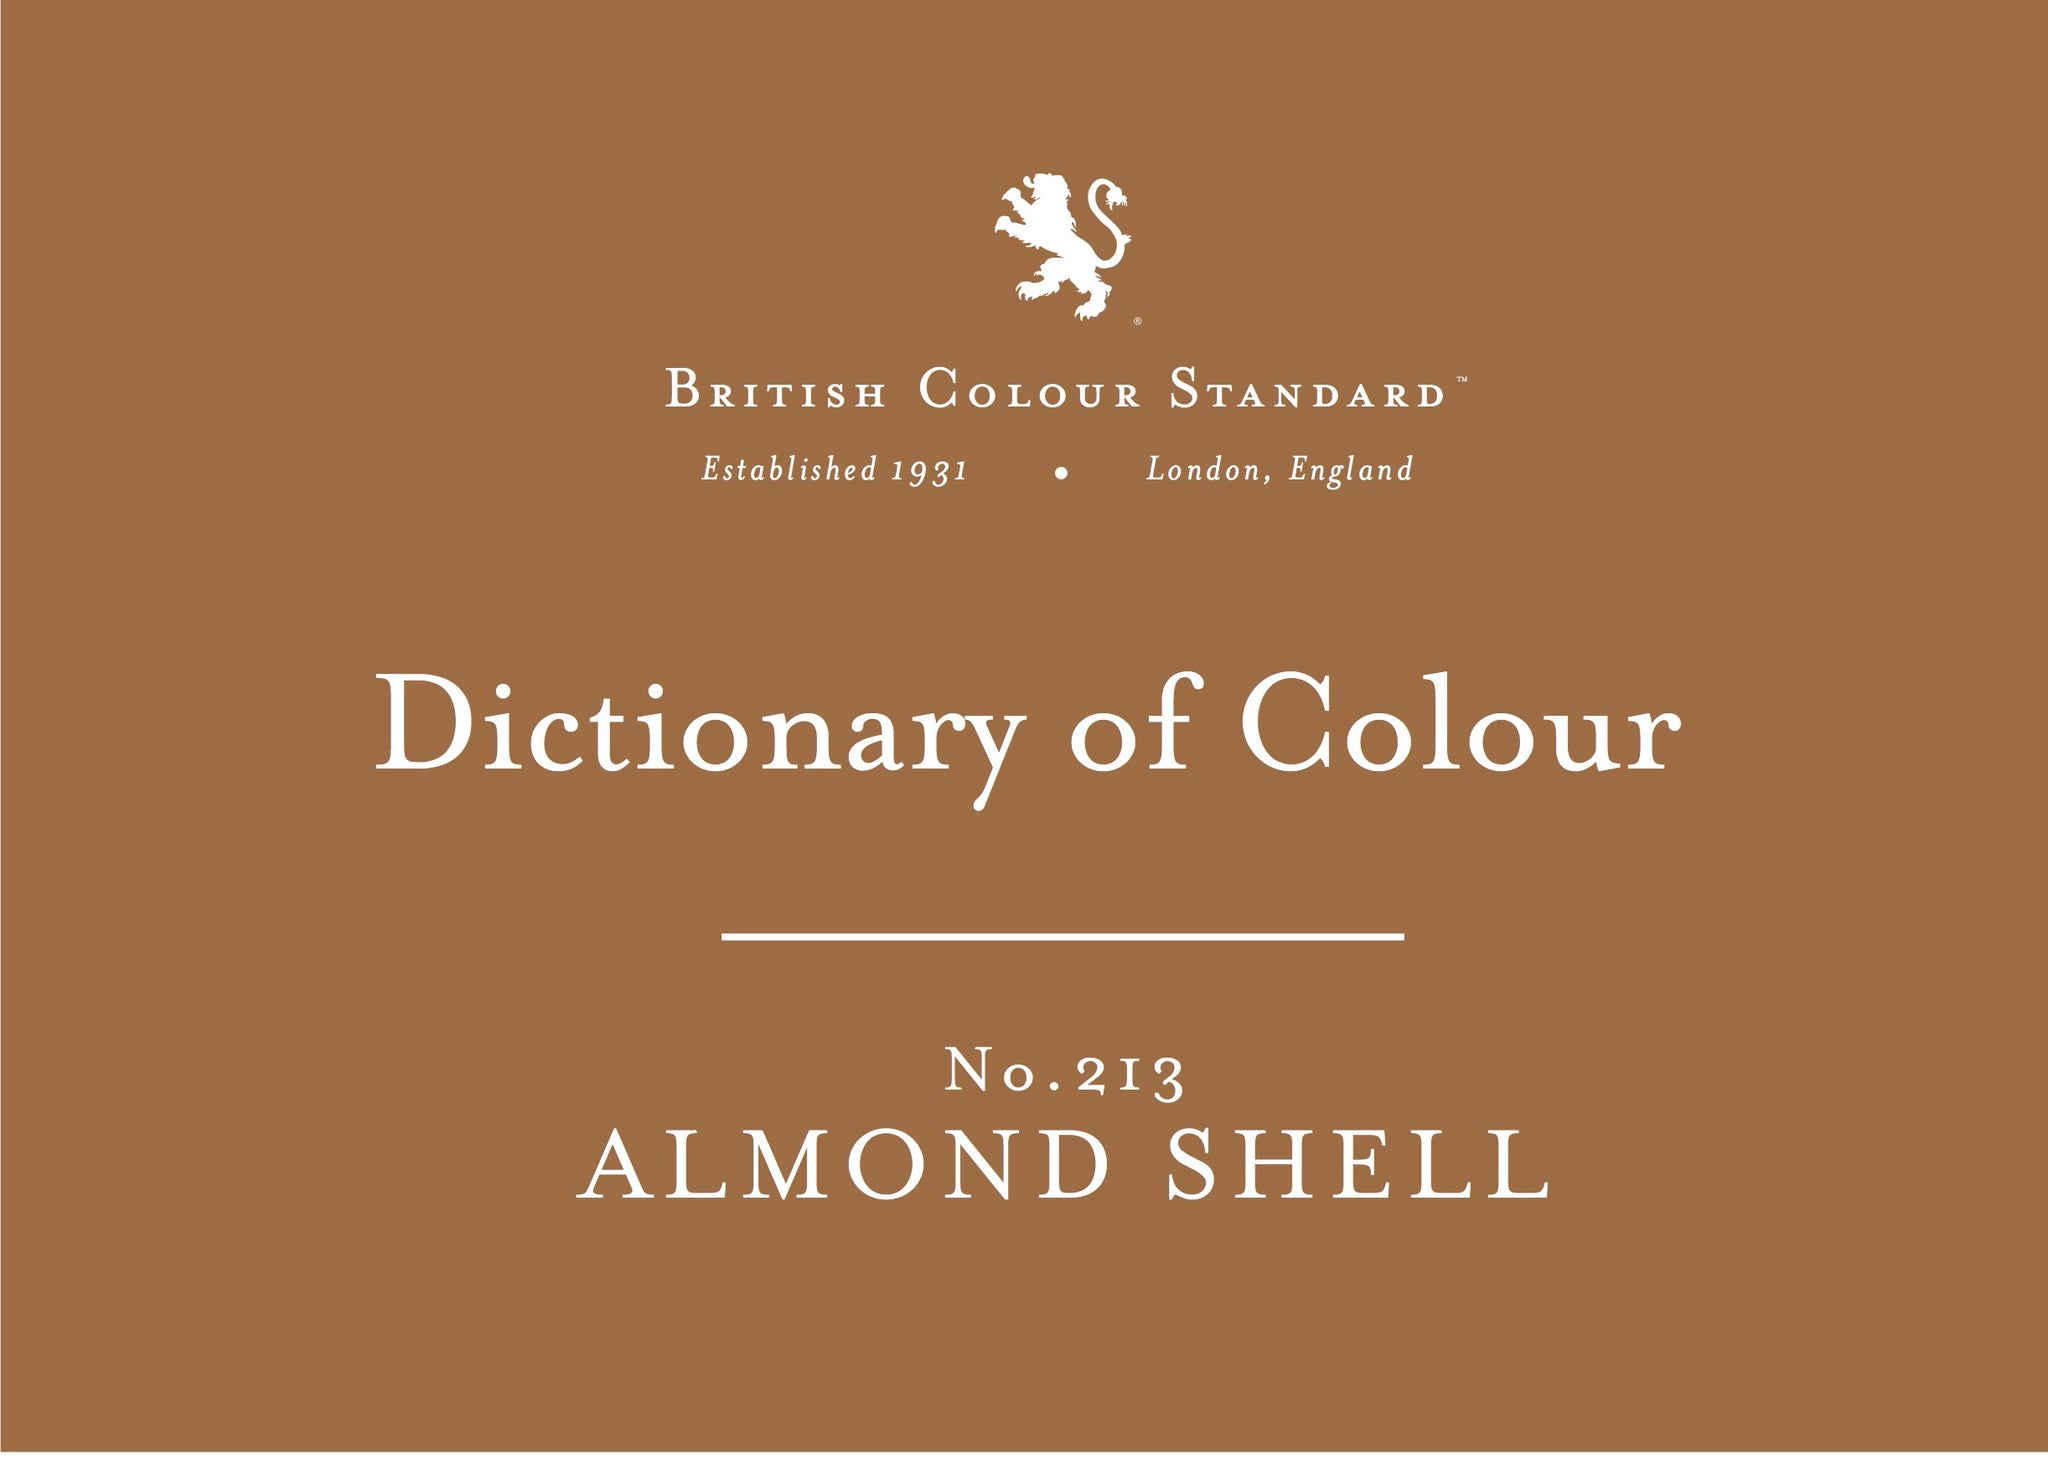 BRITISH COLOUR STANDARD - Almond Shell No.213